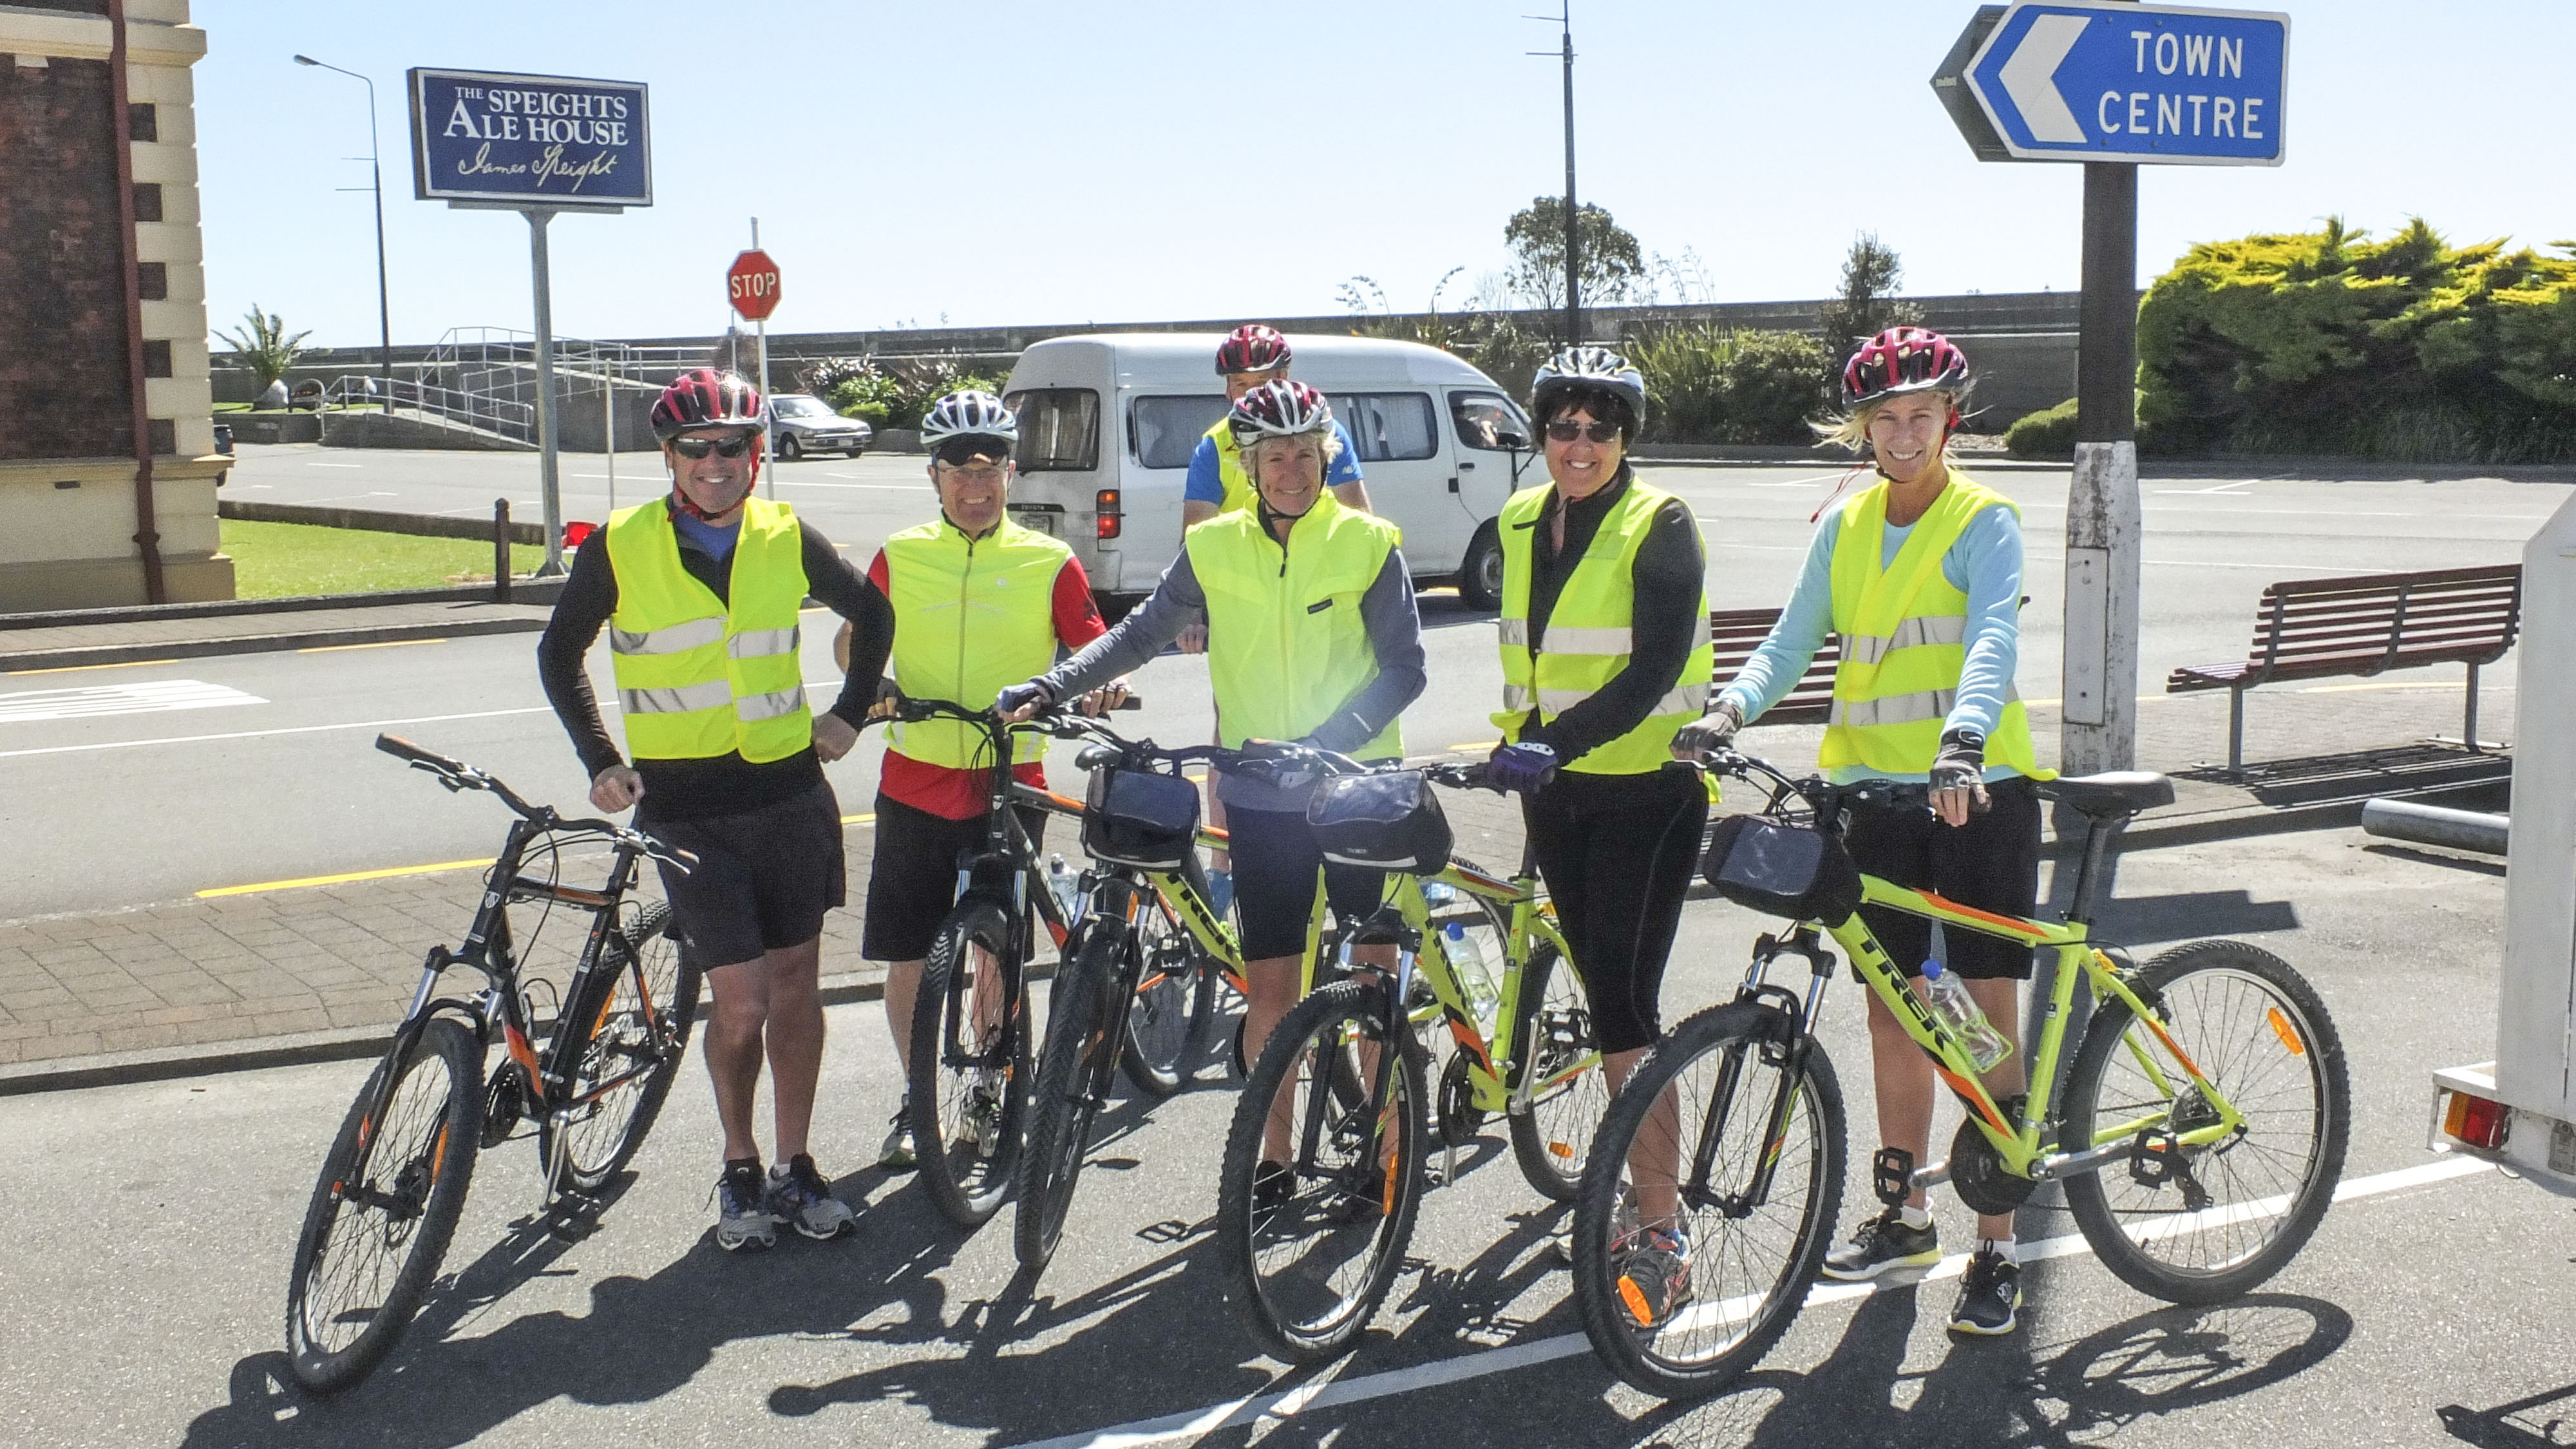 Cycle group standing beside sign